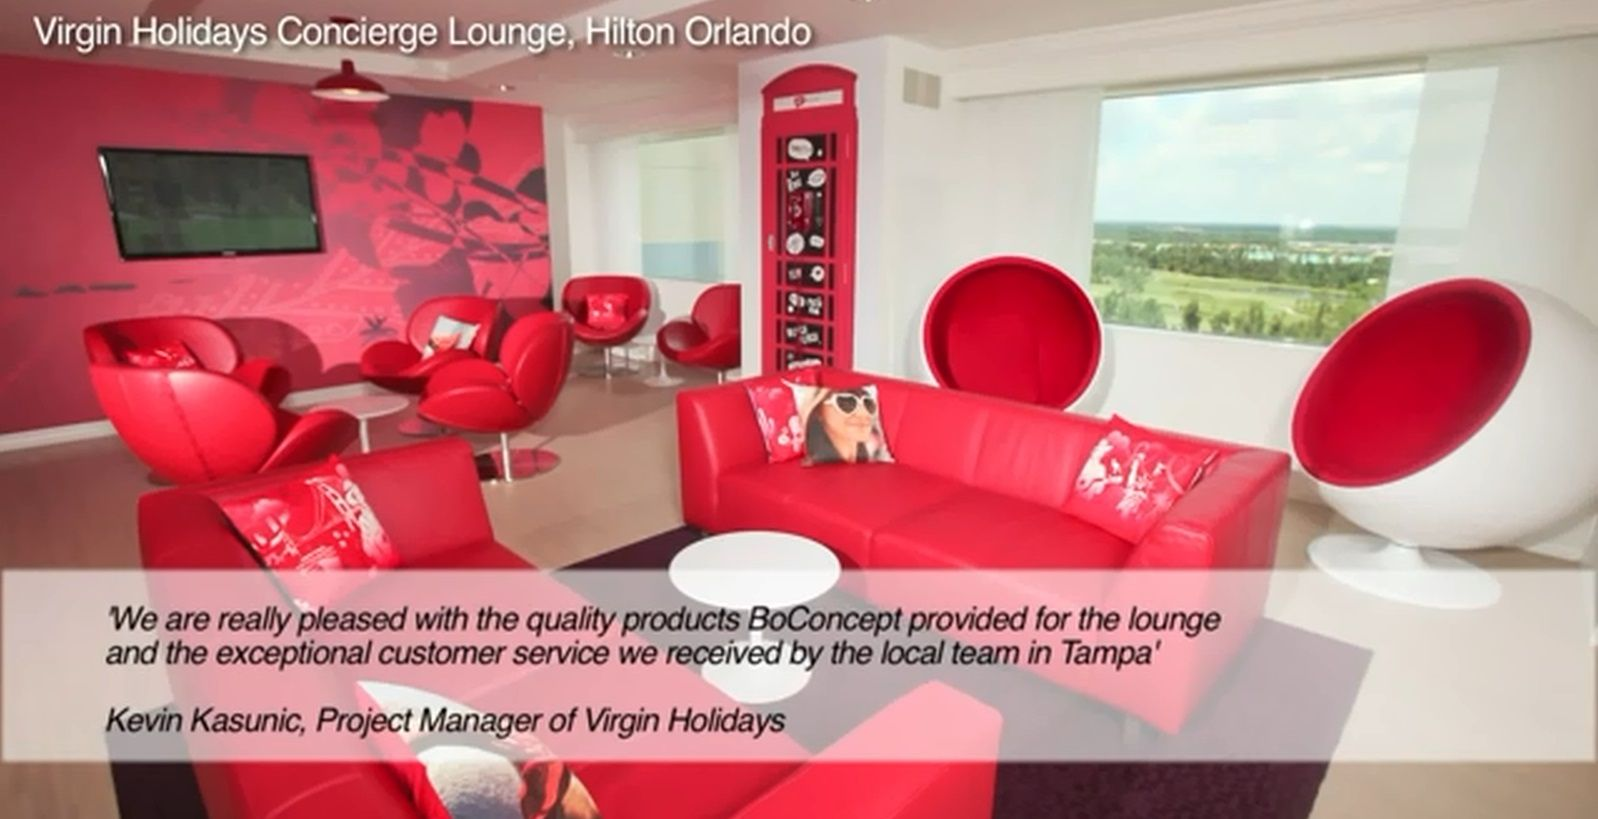 BoConcept Lugo sofas and Schelly chairs in Virgin Holidays Lounge